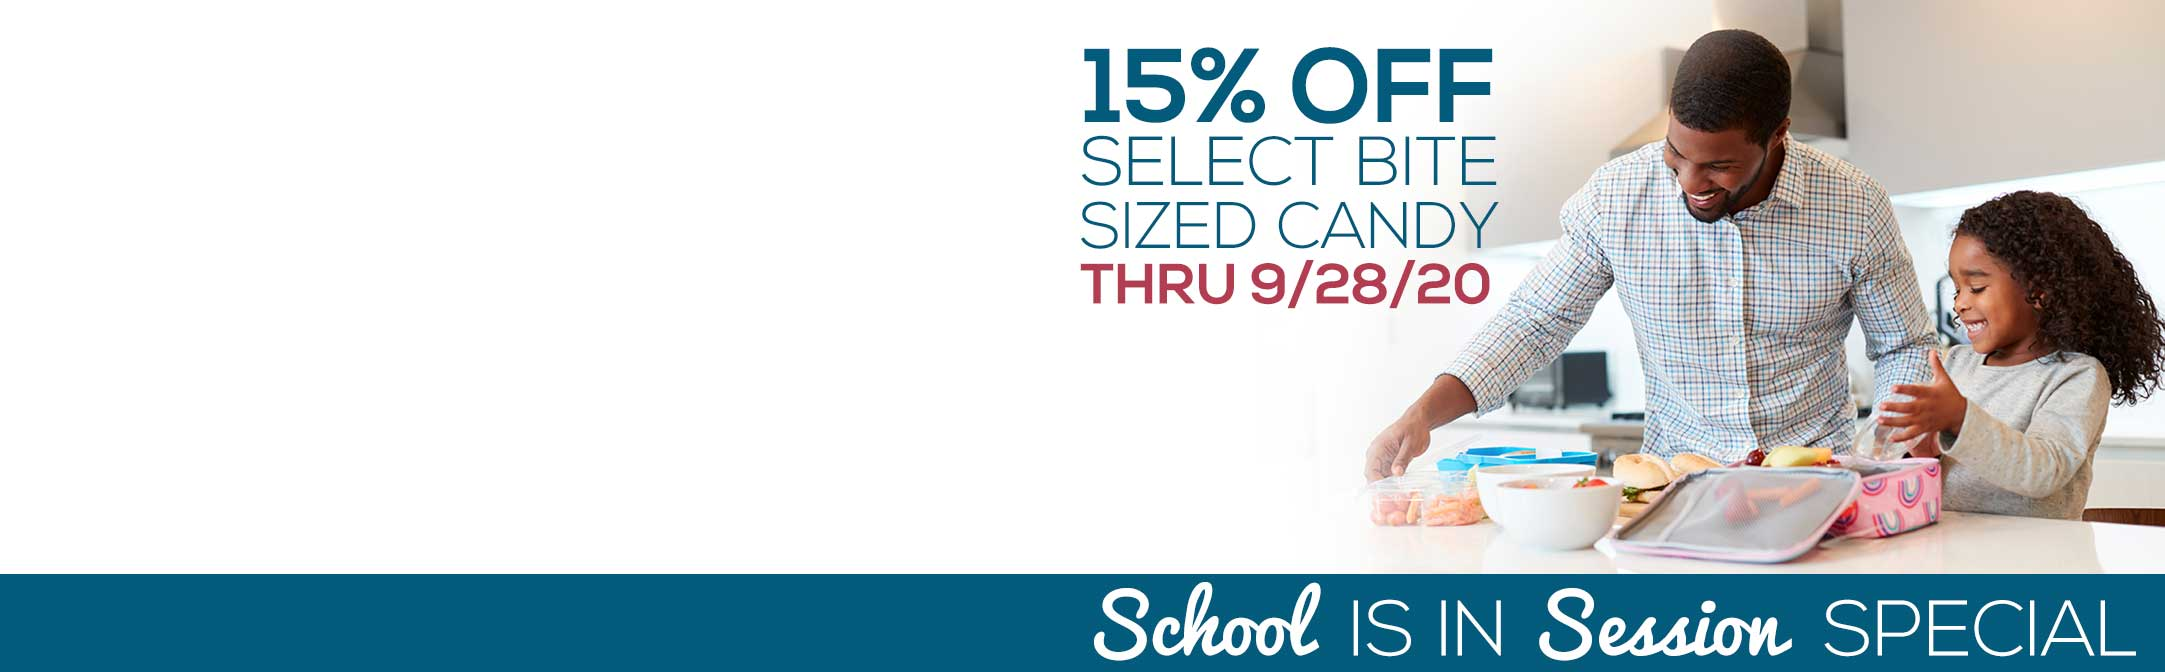 15% off bite sized candy